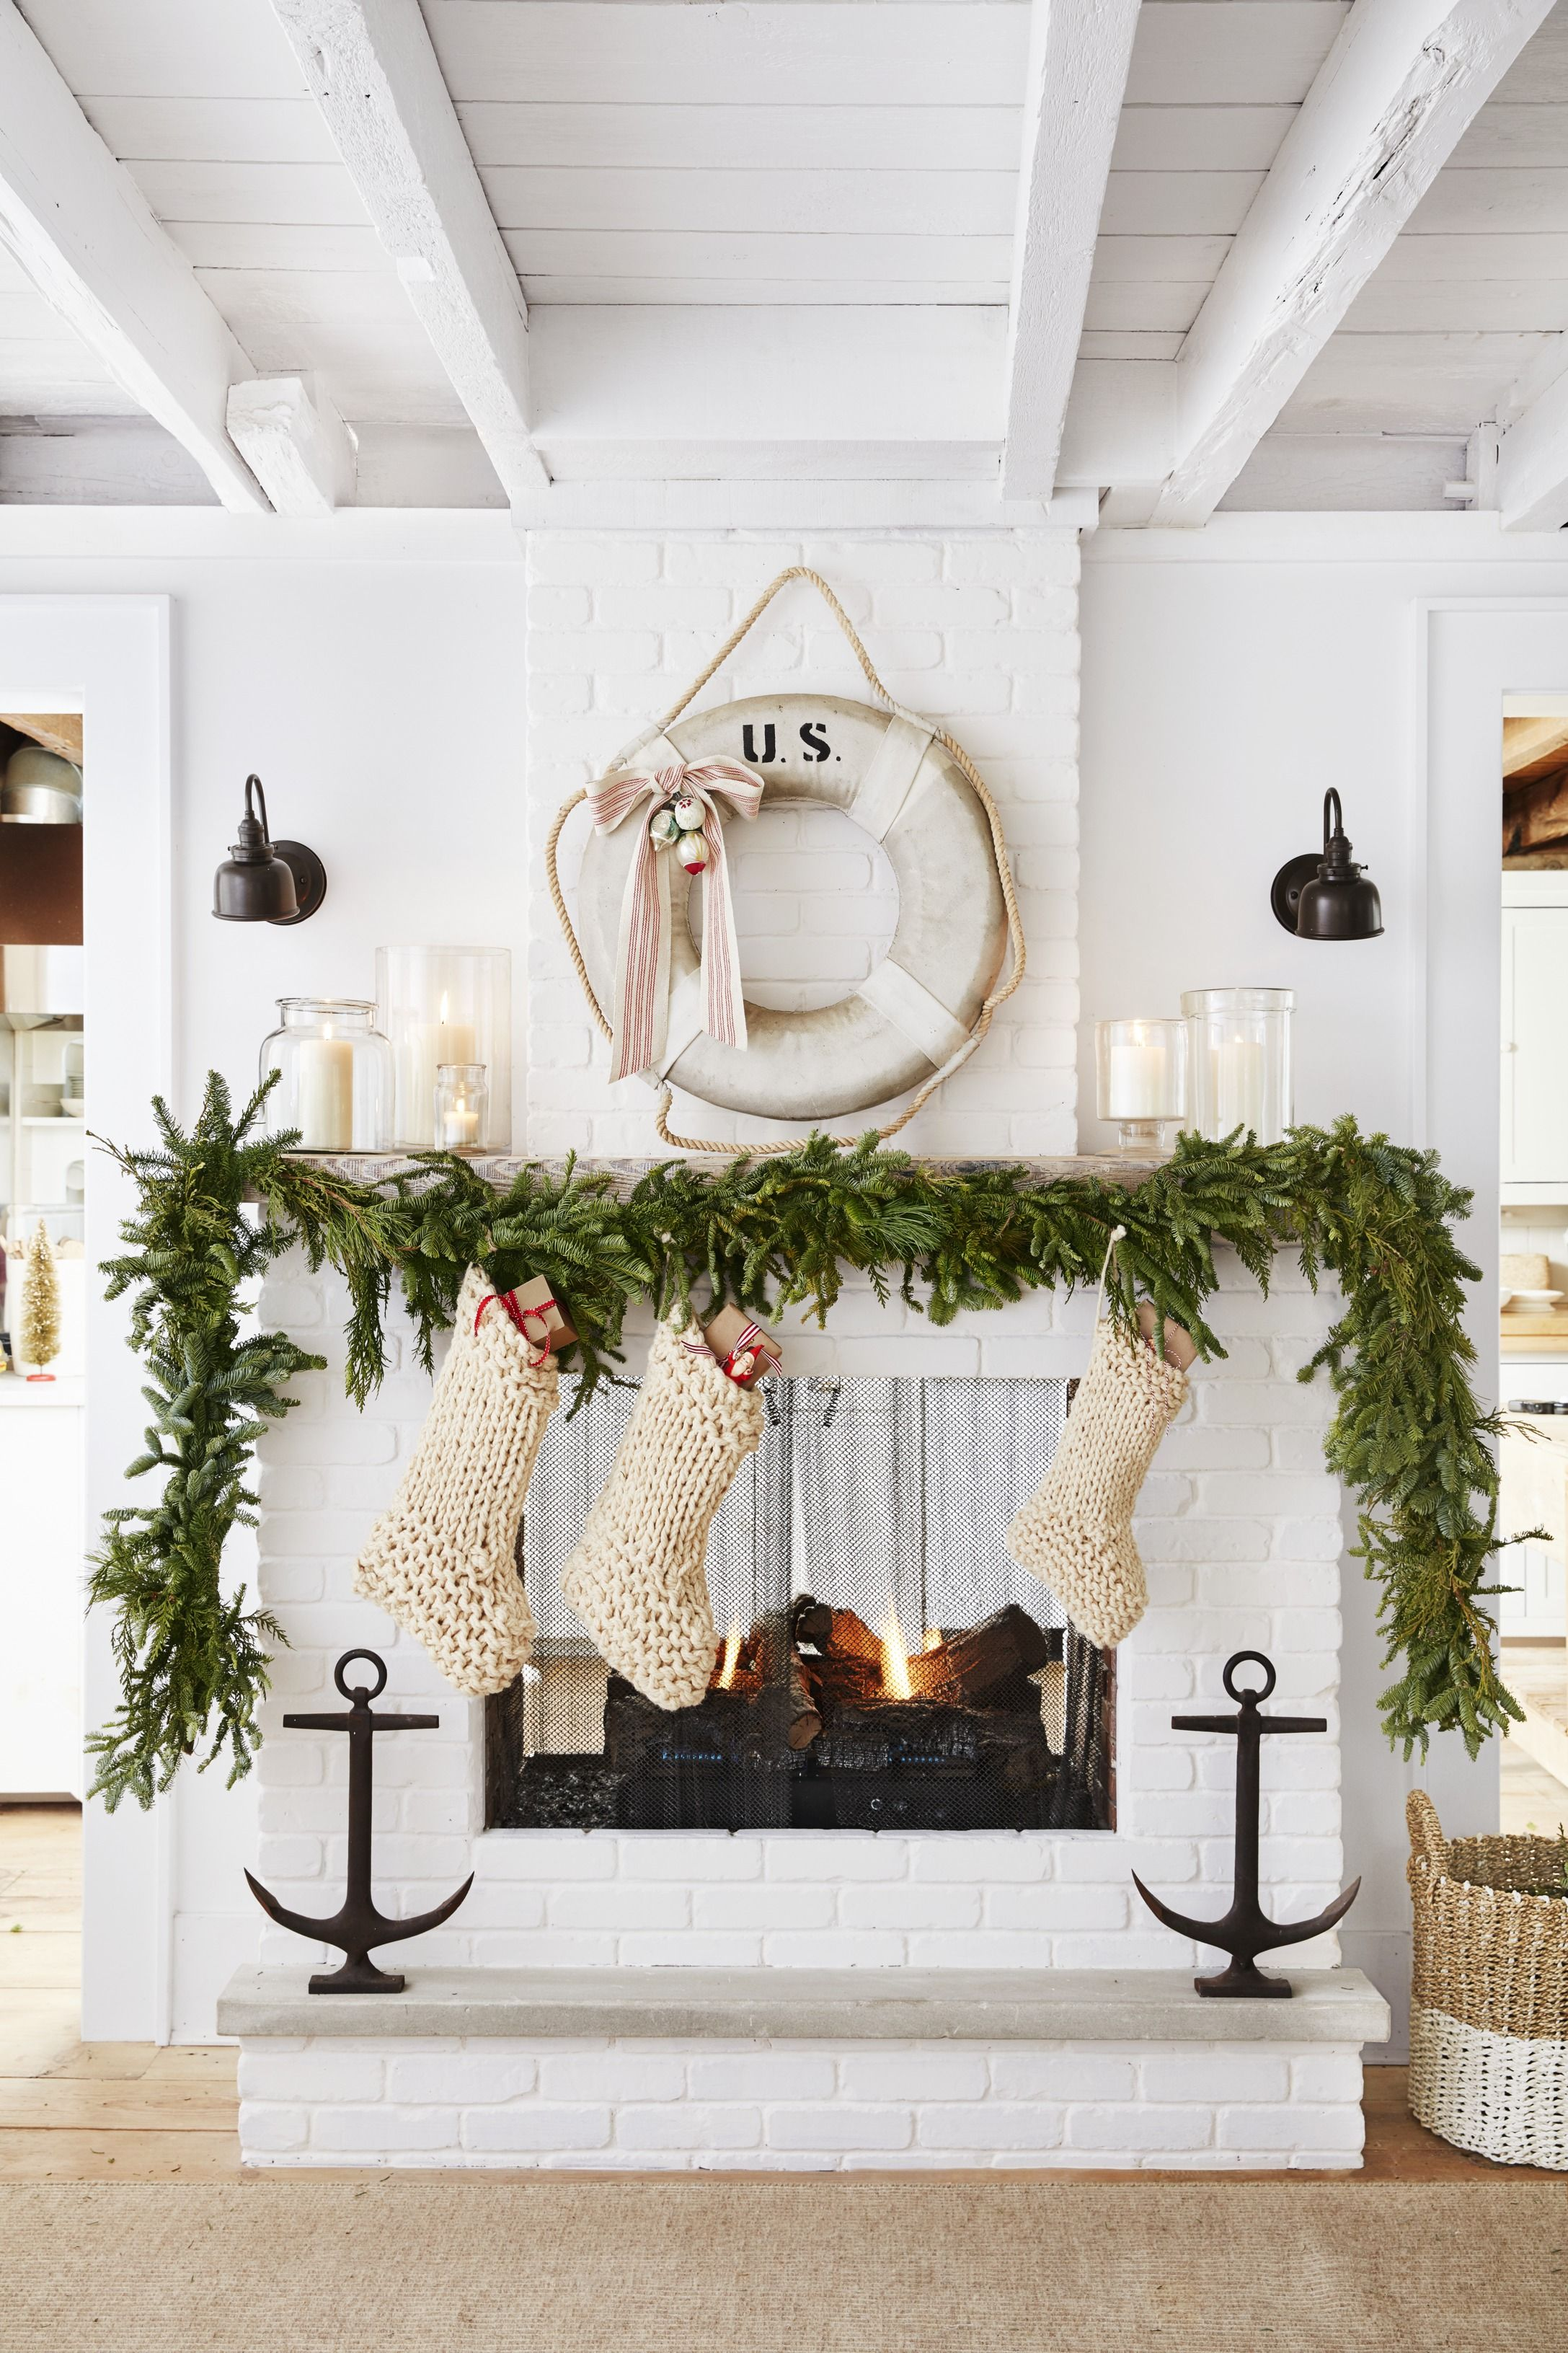 78 Diy Christmas Decorations Homemade Christmas Decor Ideas